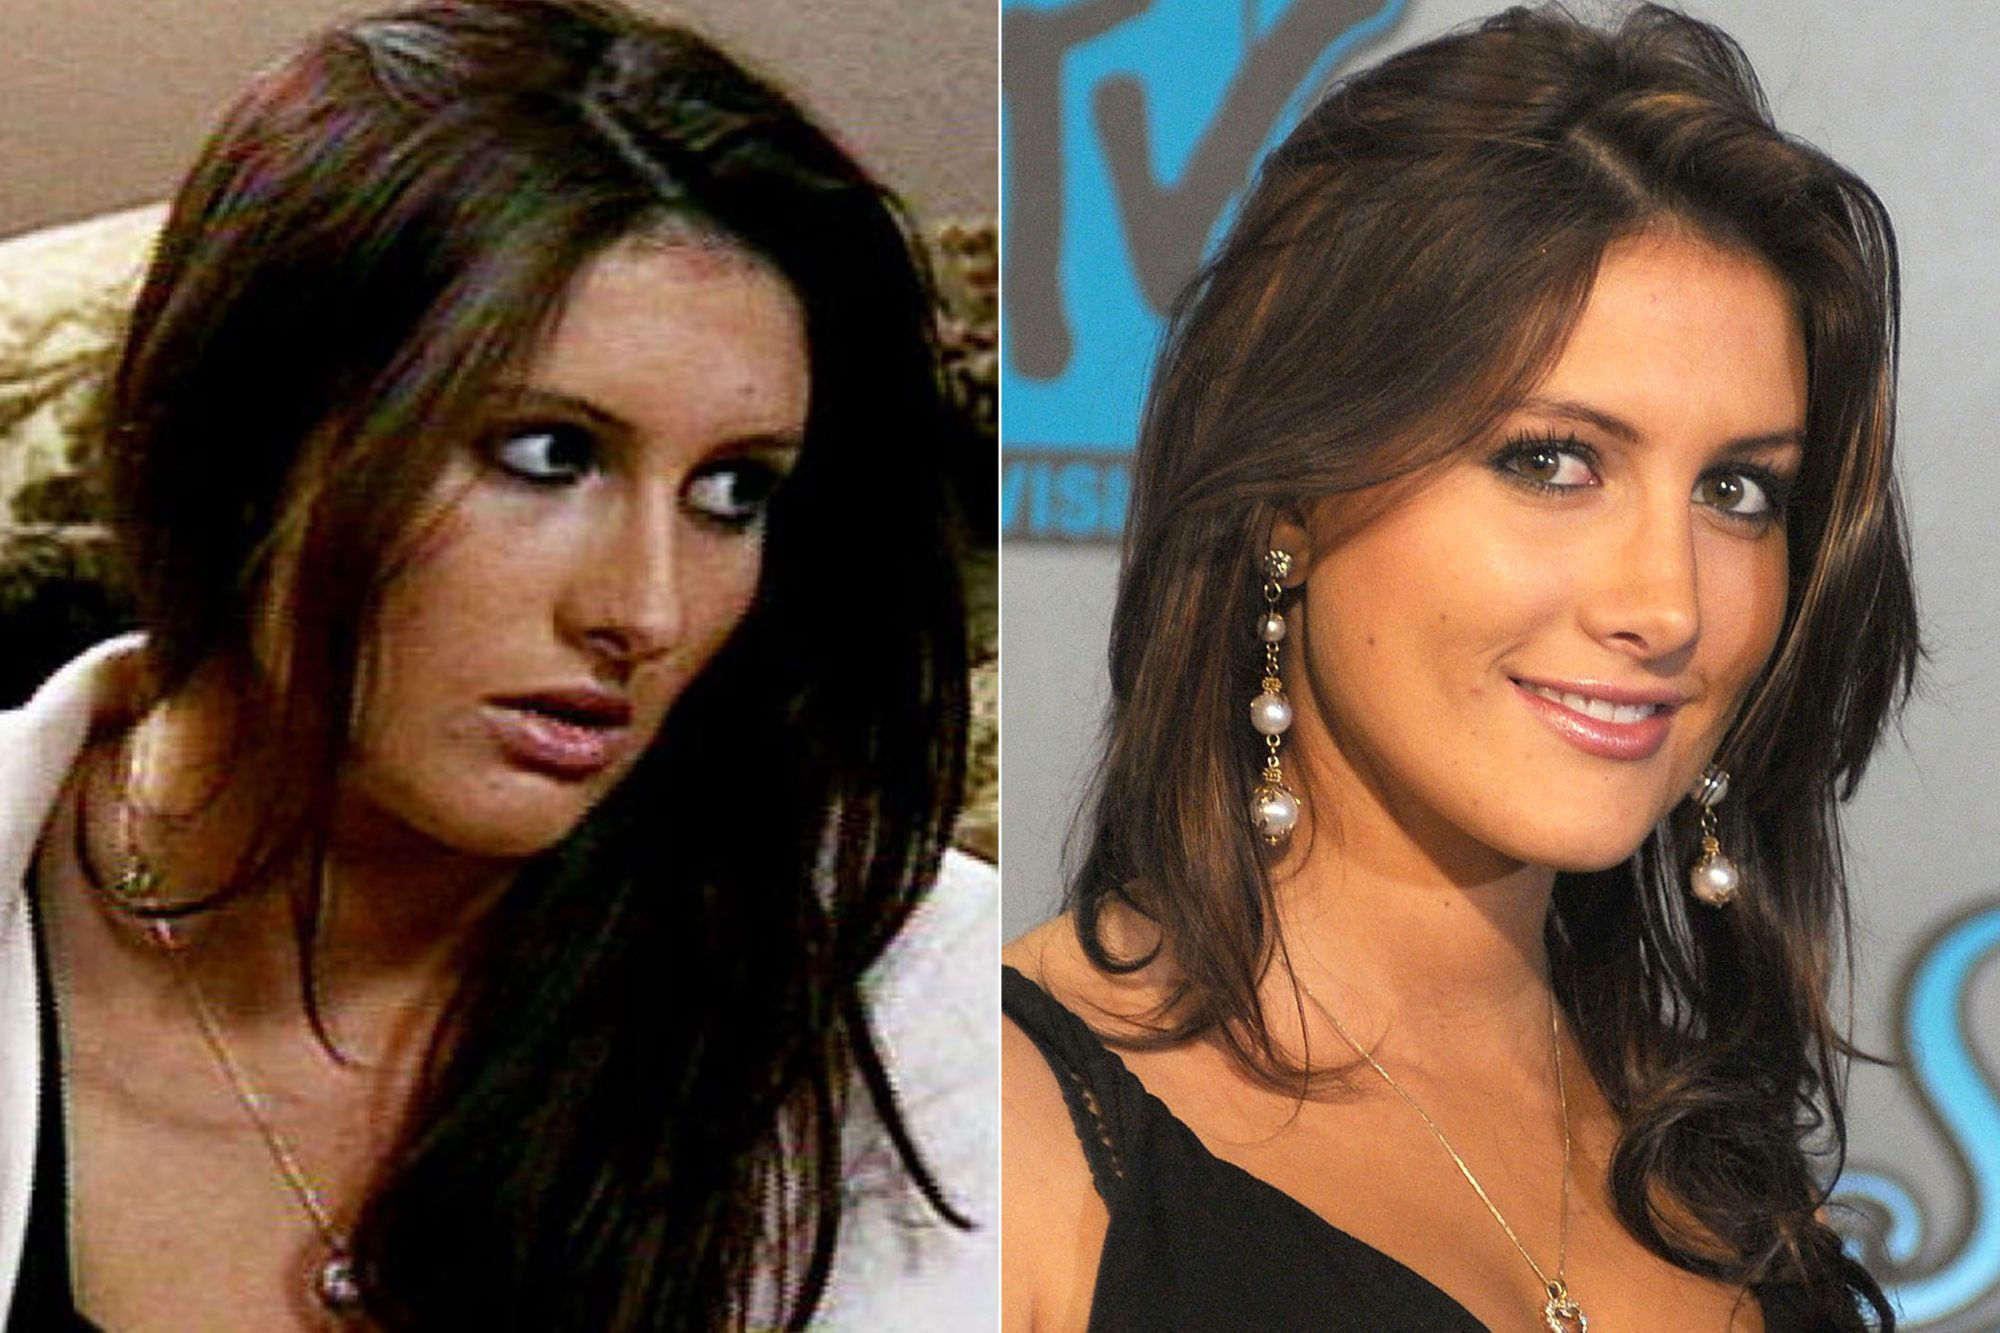 THE HILLS - Then & Now